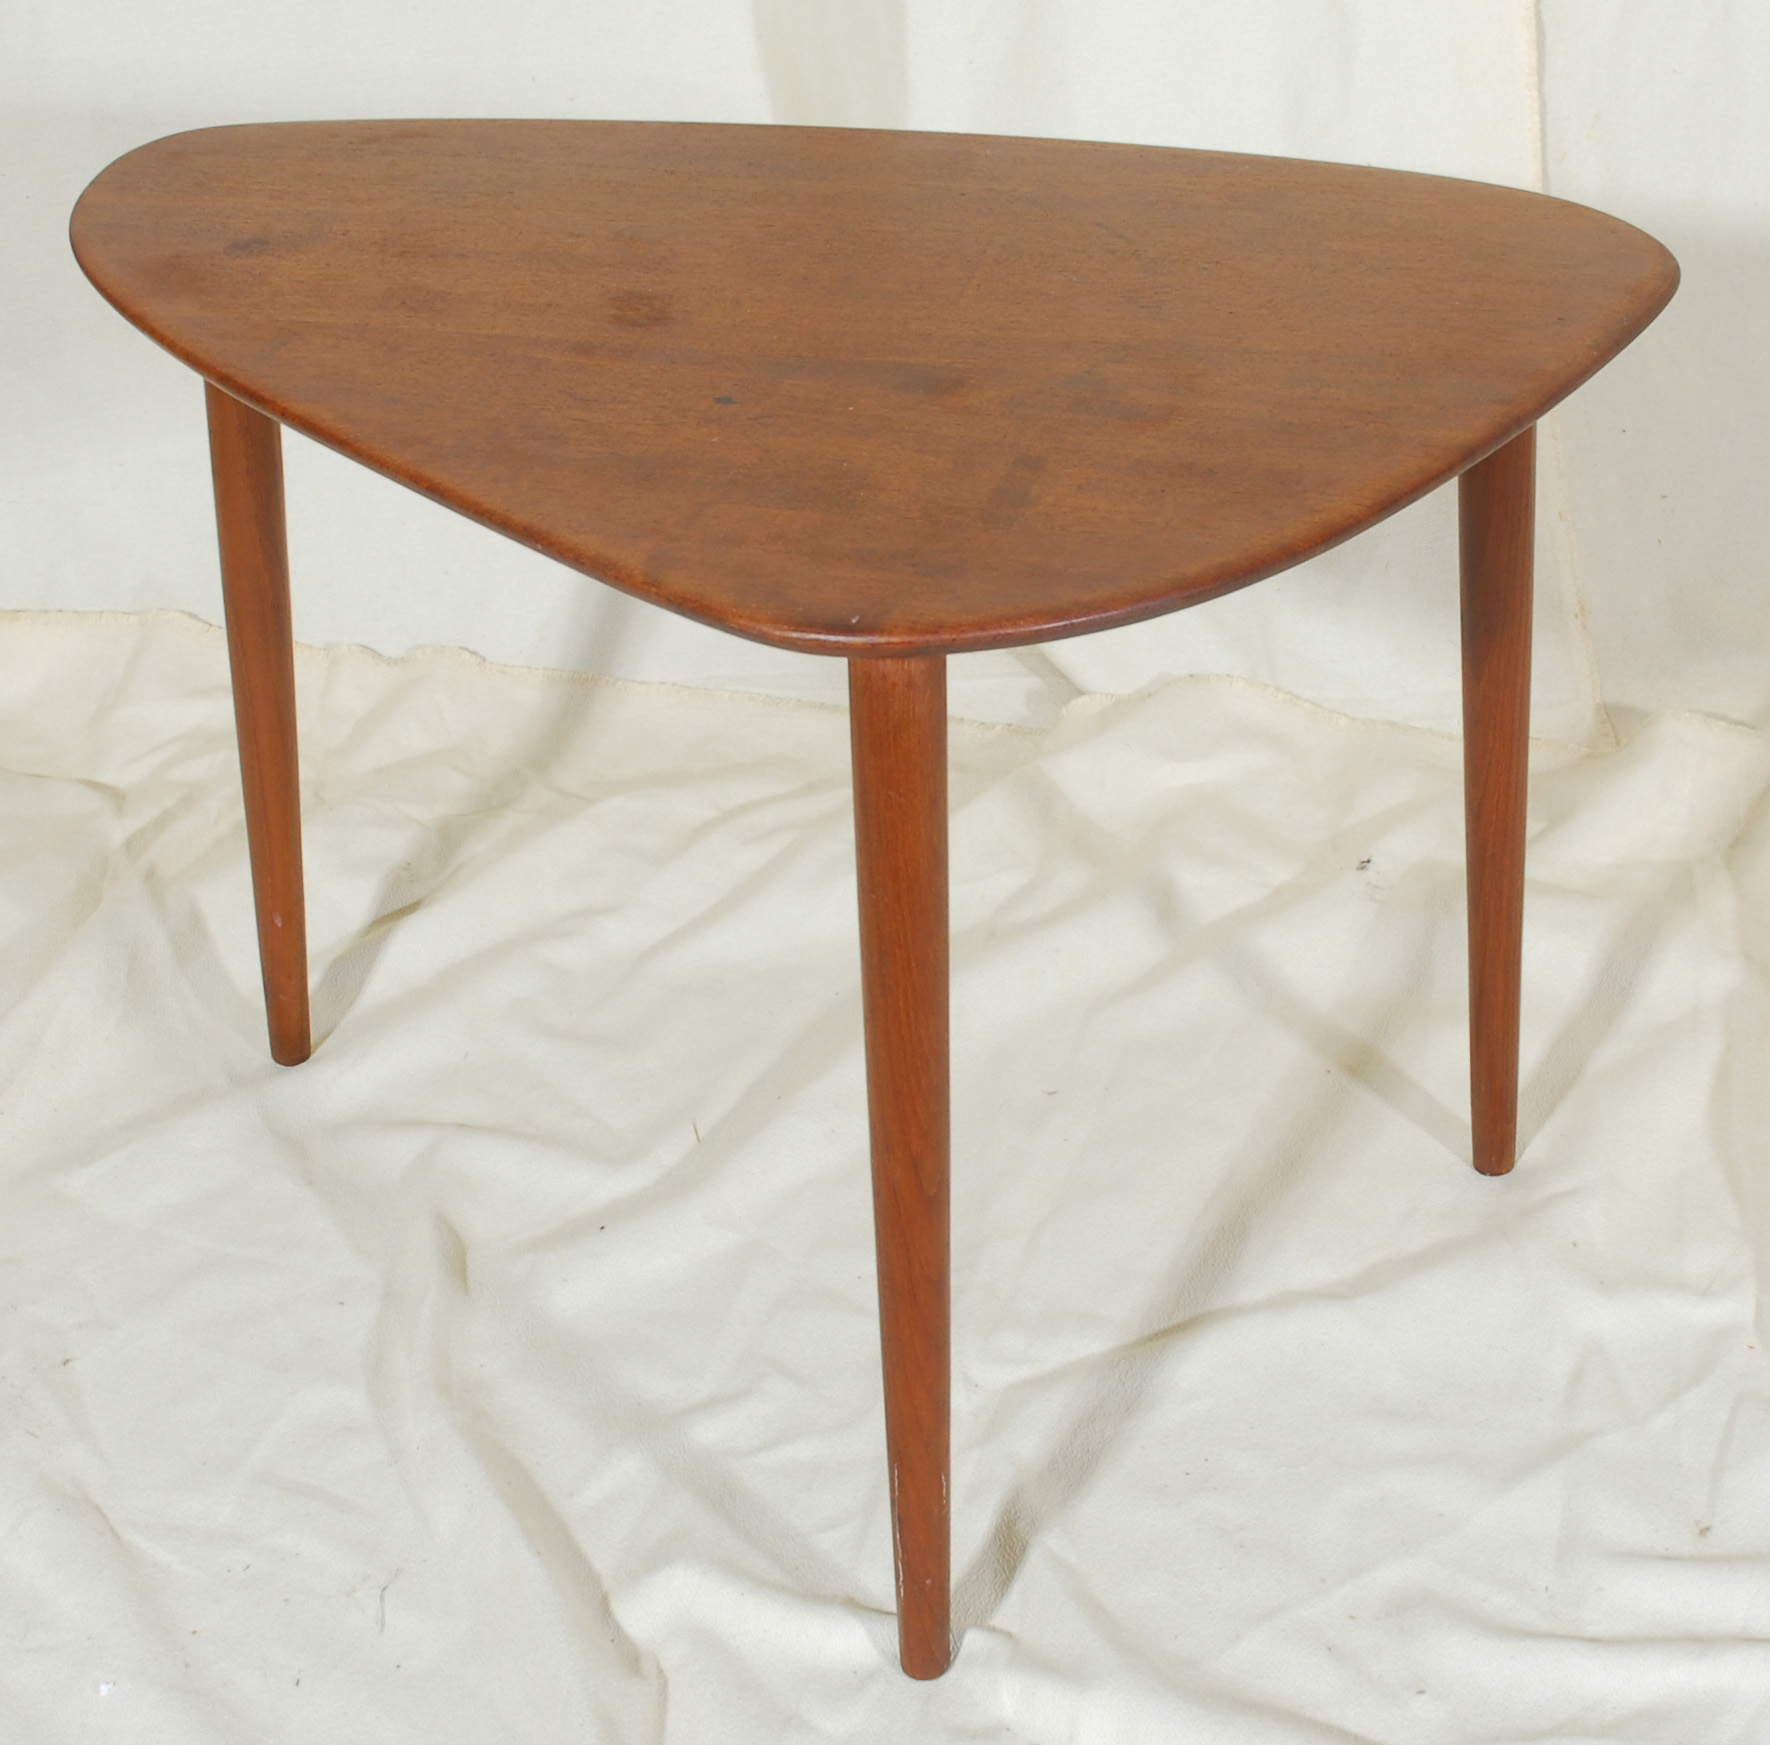 Triangular Danish Modern Teak End Table